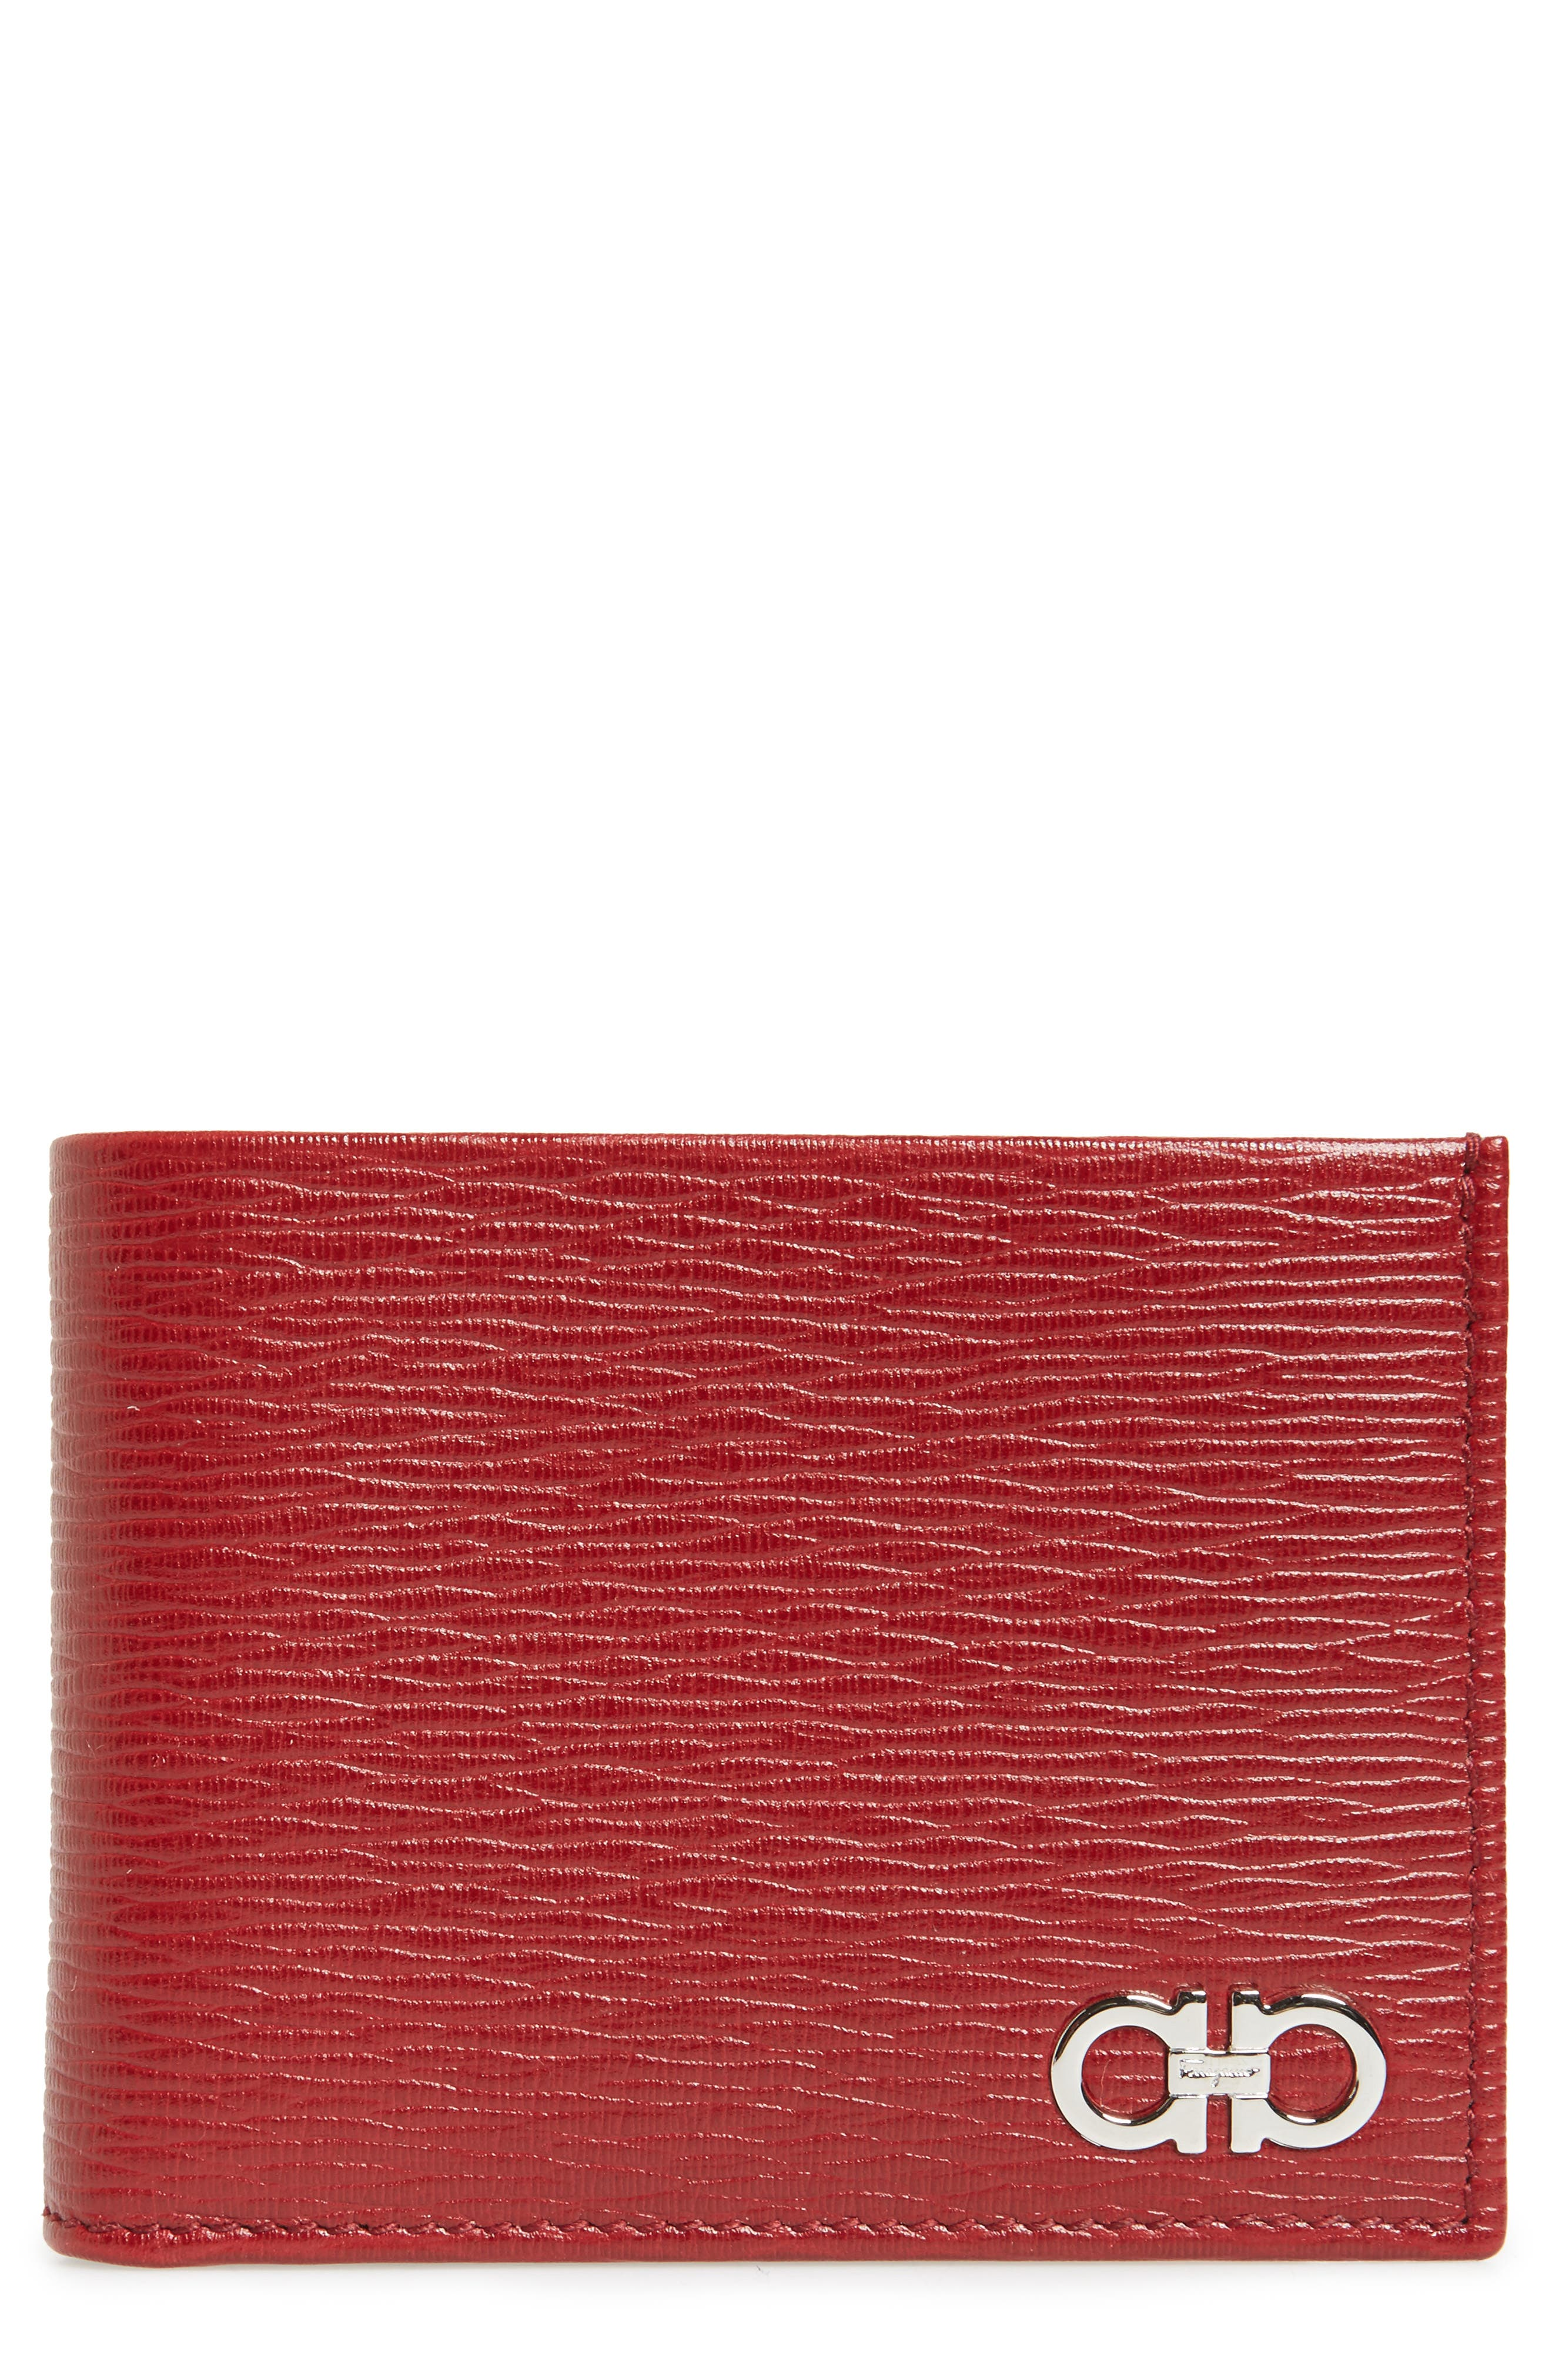 Revival Bifold Leather Wallet,                             Main thumbnail 1, color,                             Red